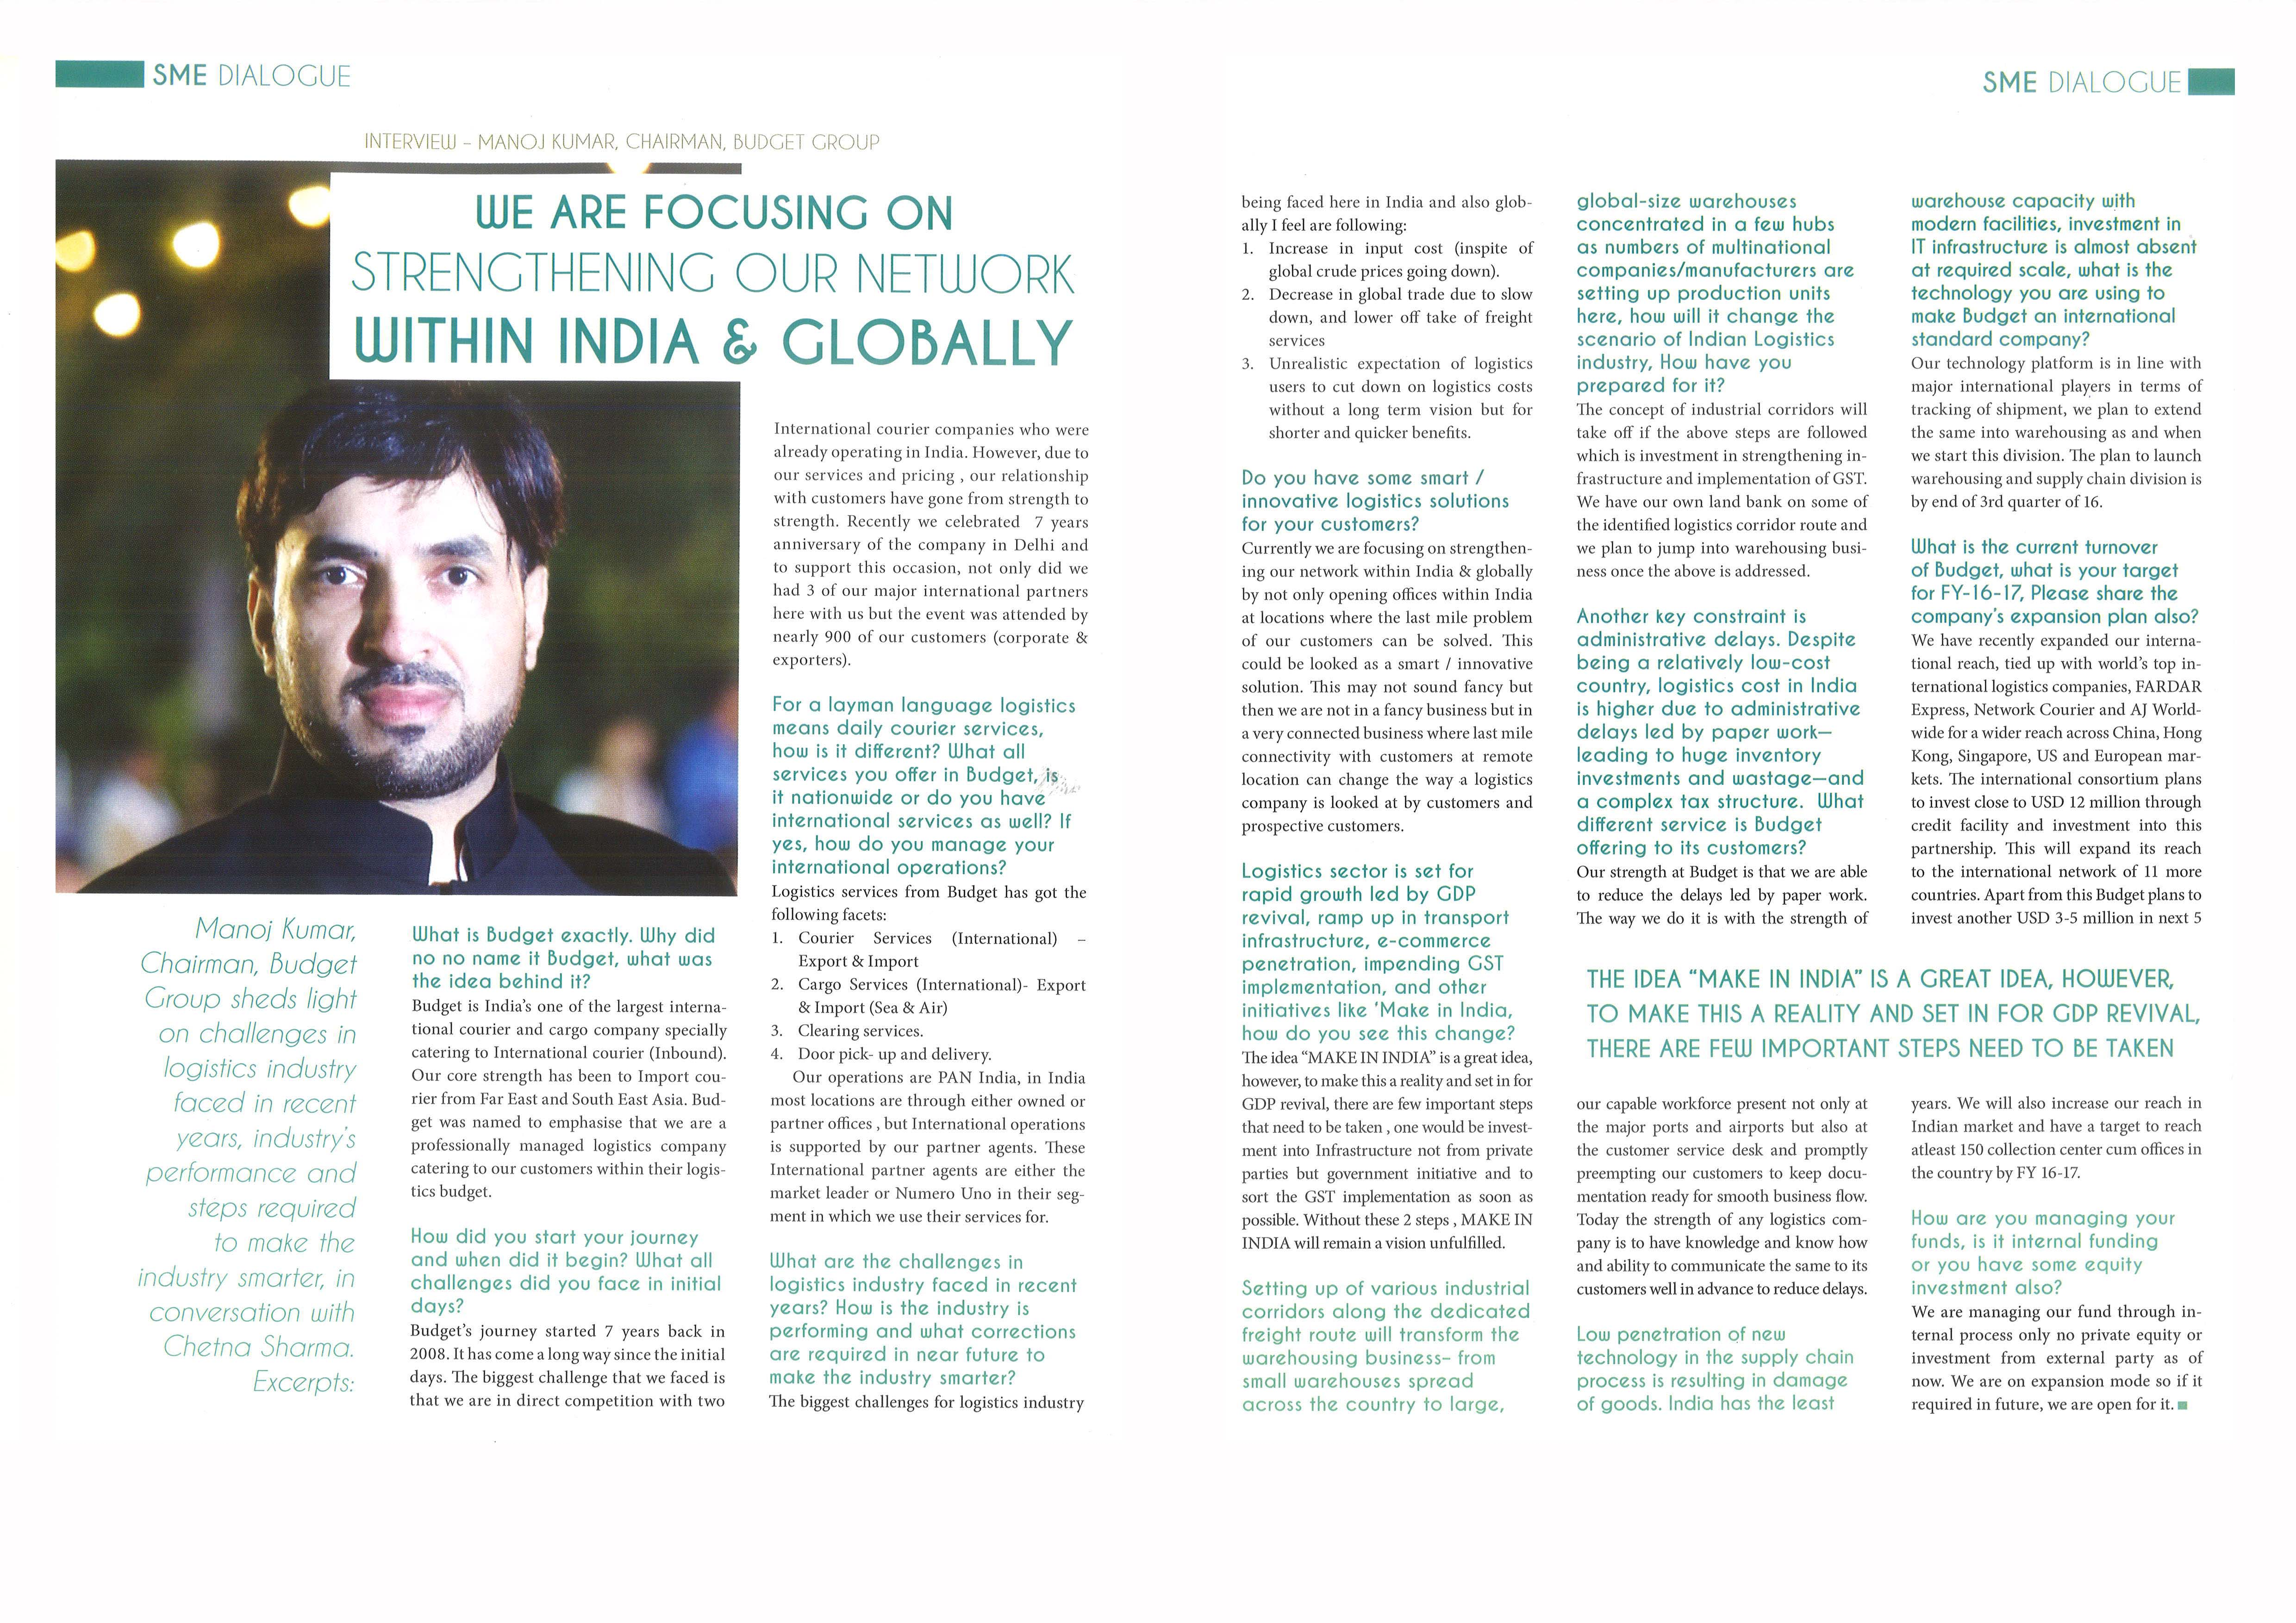 Interview of  our honourable chairman Mr. Manoj Kumar, published in CITY Living